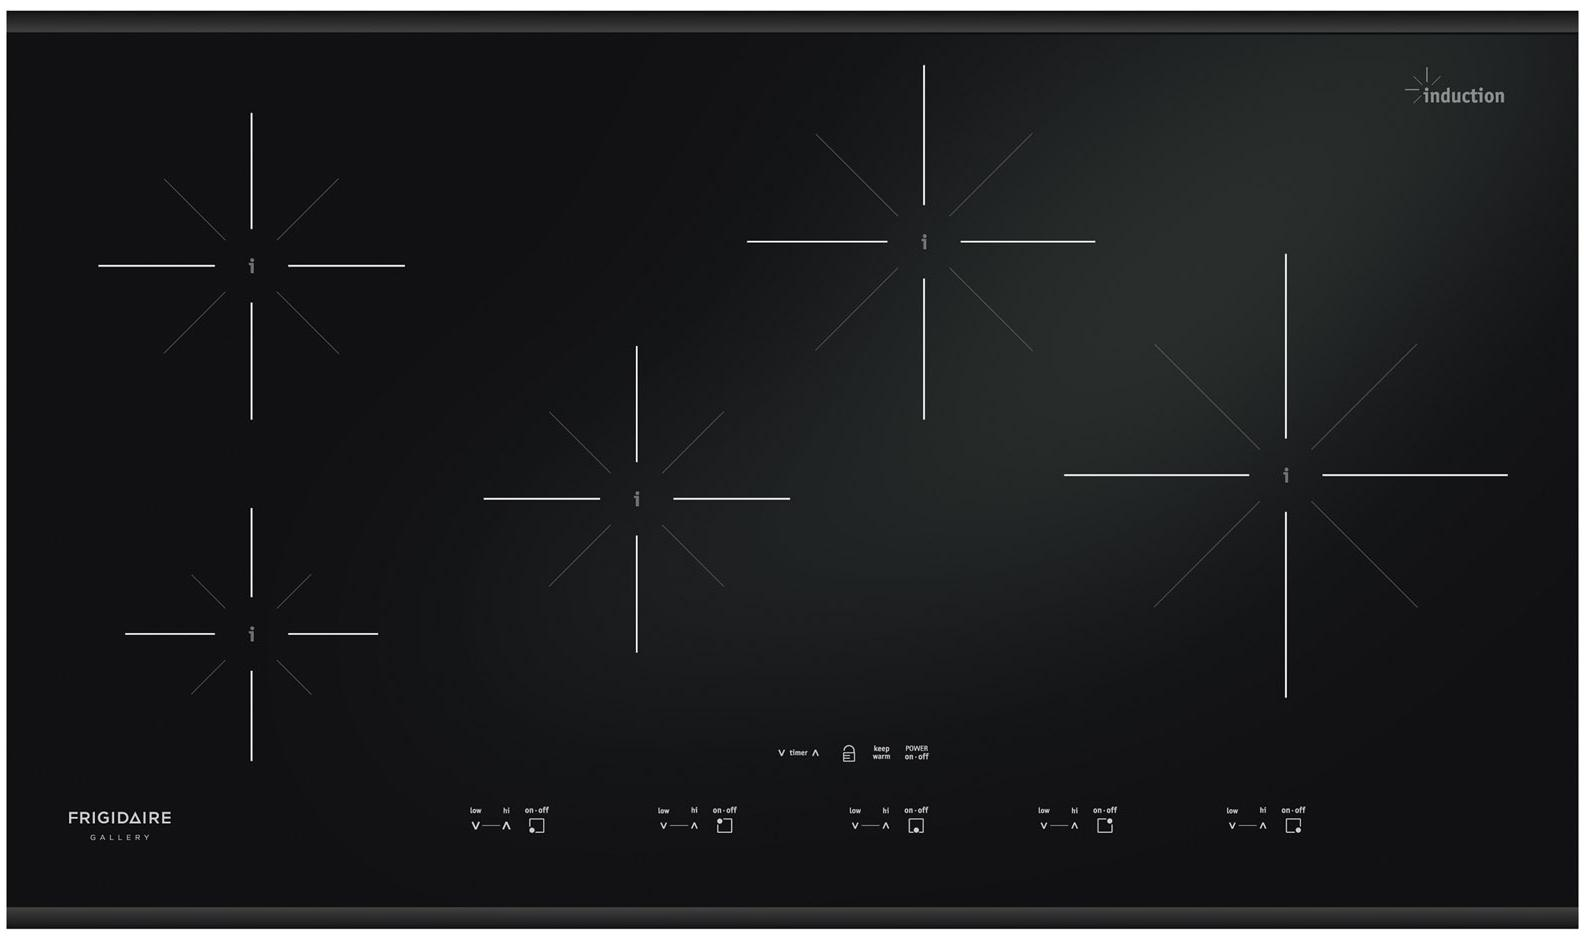 """Frigidaire Frigidaire Gallery Electric Cooktops 36"""" Built-In Induction Cooktop - Item Number: FGIC3667MB"""